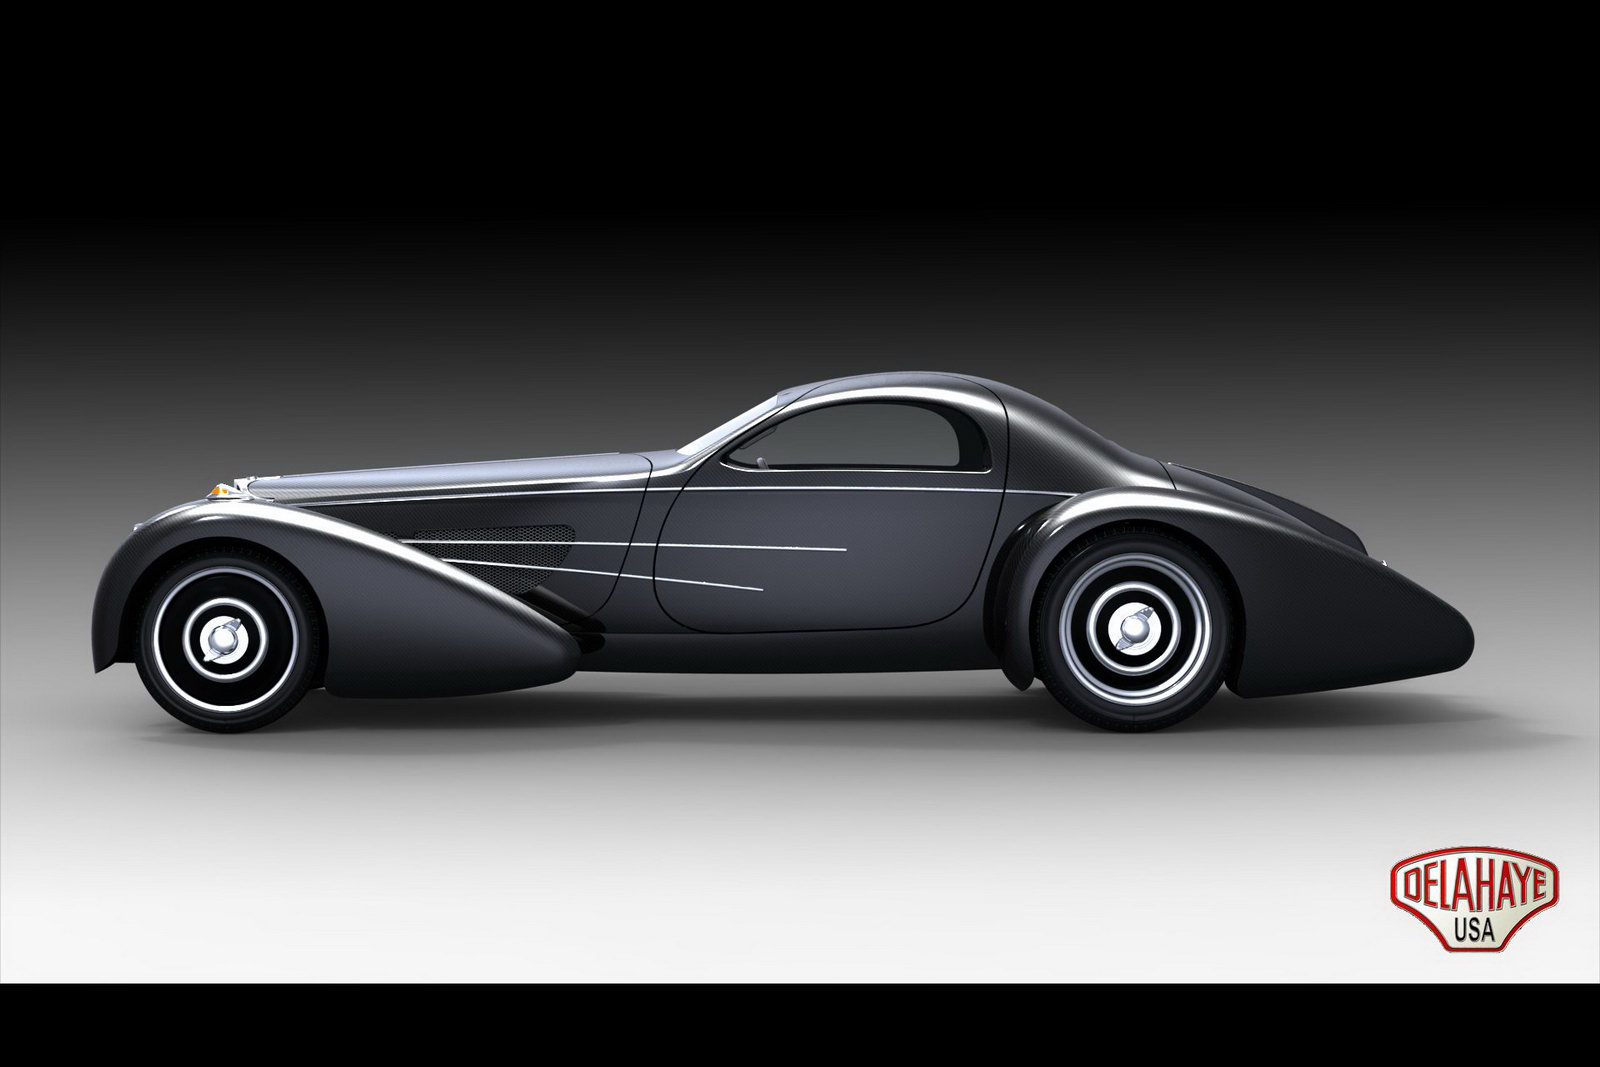 Pebble beach preview delahaye bella fugura bugnotti 57s for Modern photography for sale